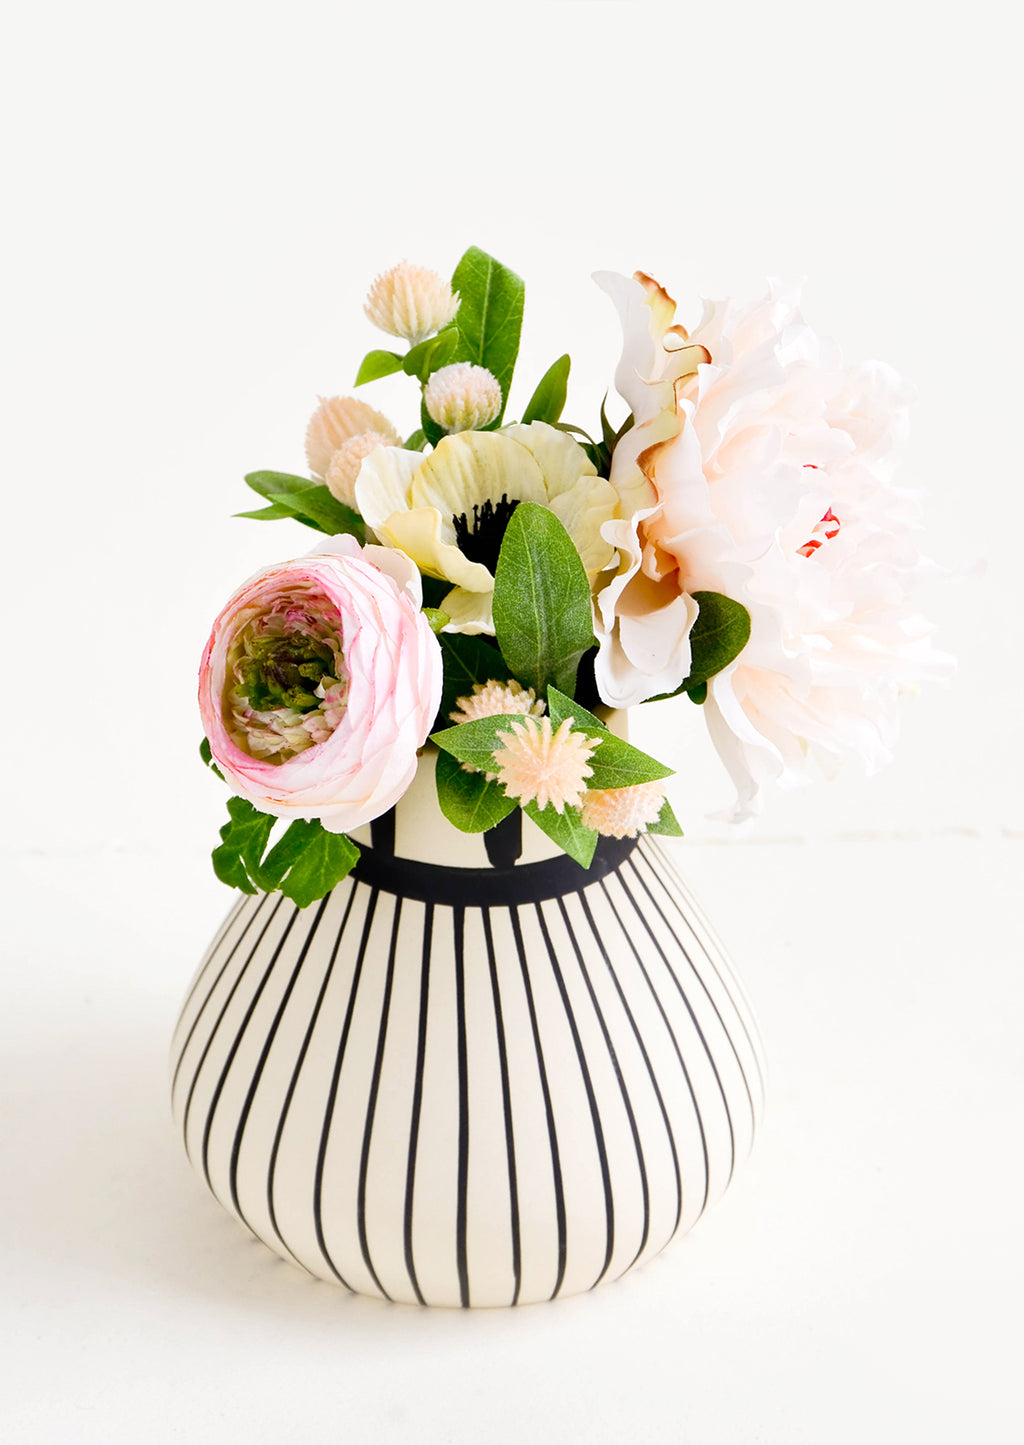 1: Black & white striped ceramic vase with a bouquet of flowers